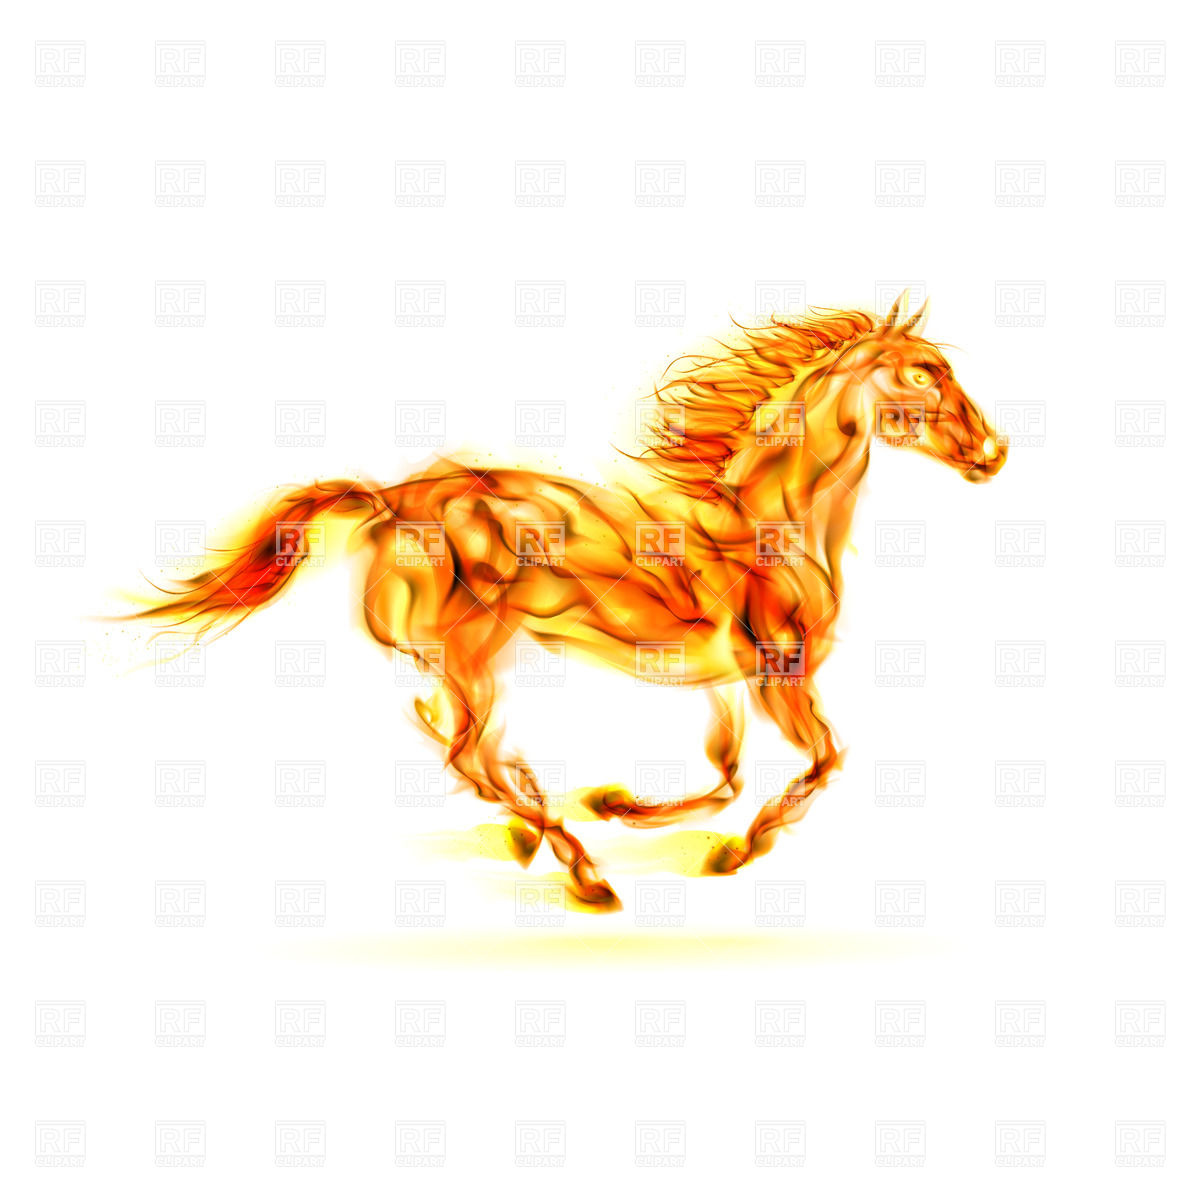 Running fiery horse on white background Vector Image #24883.